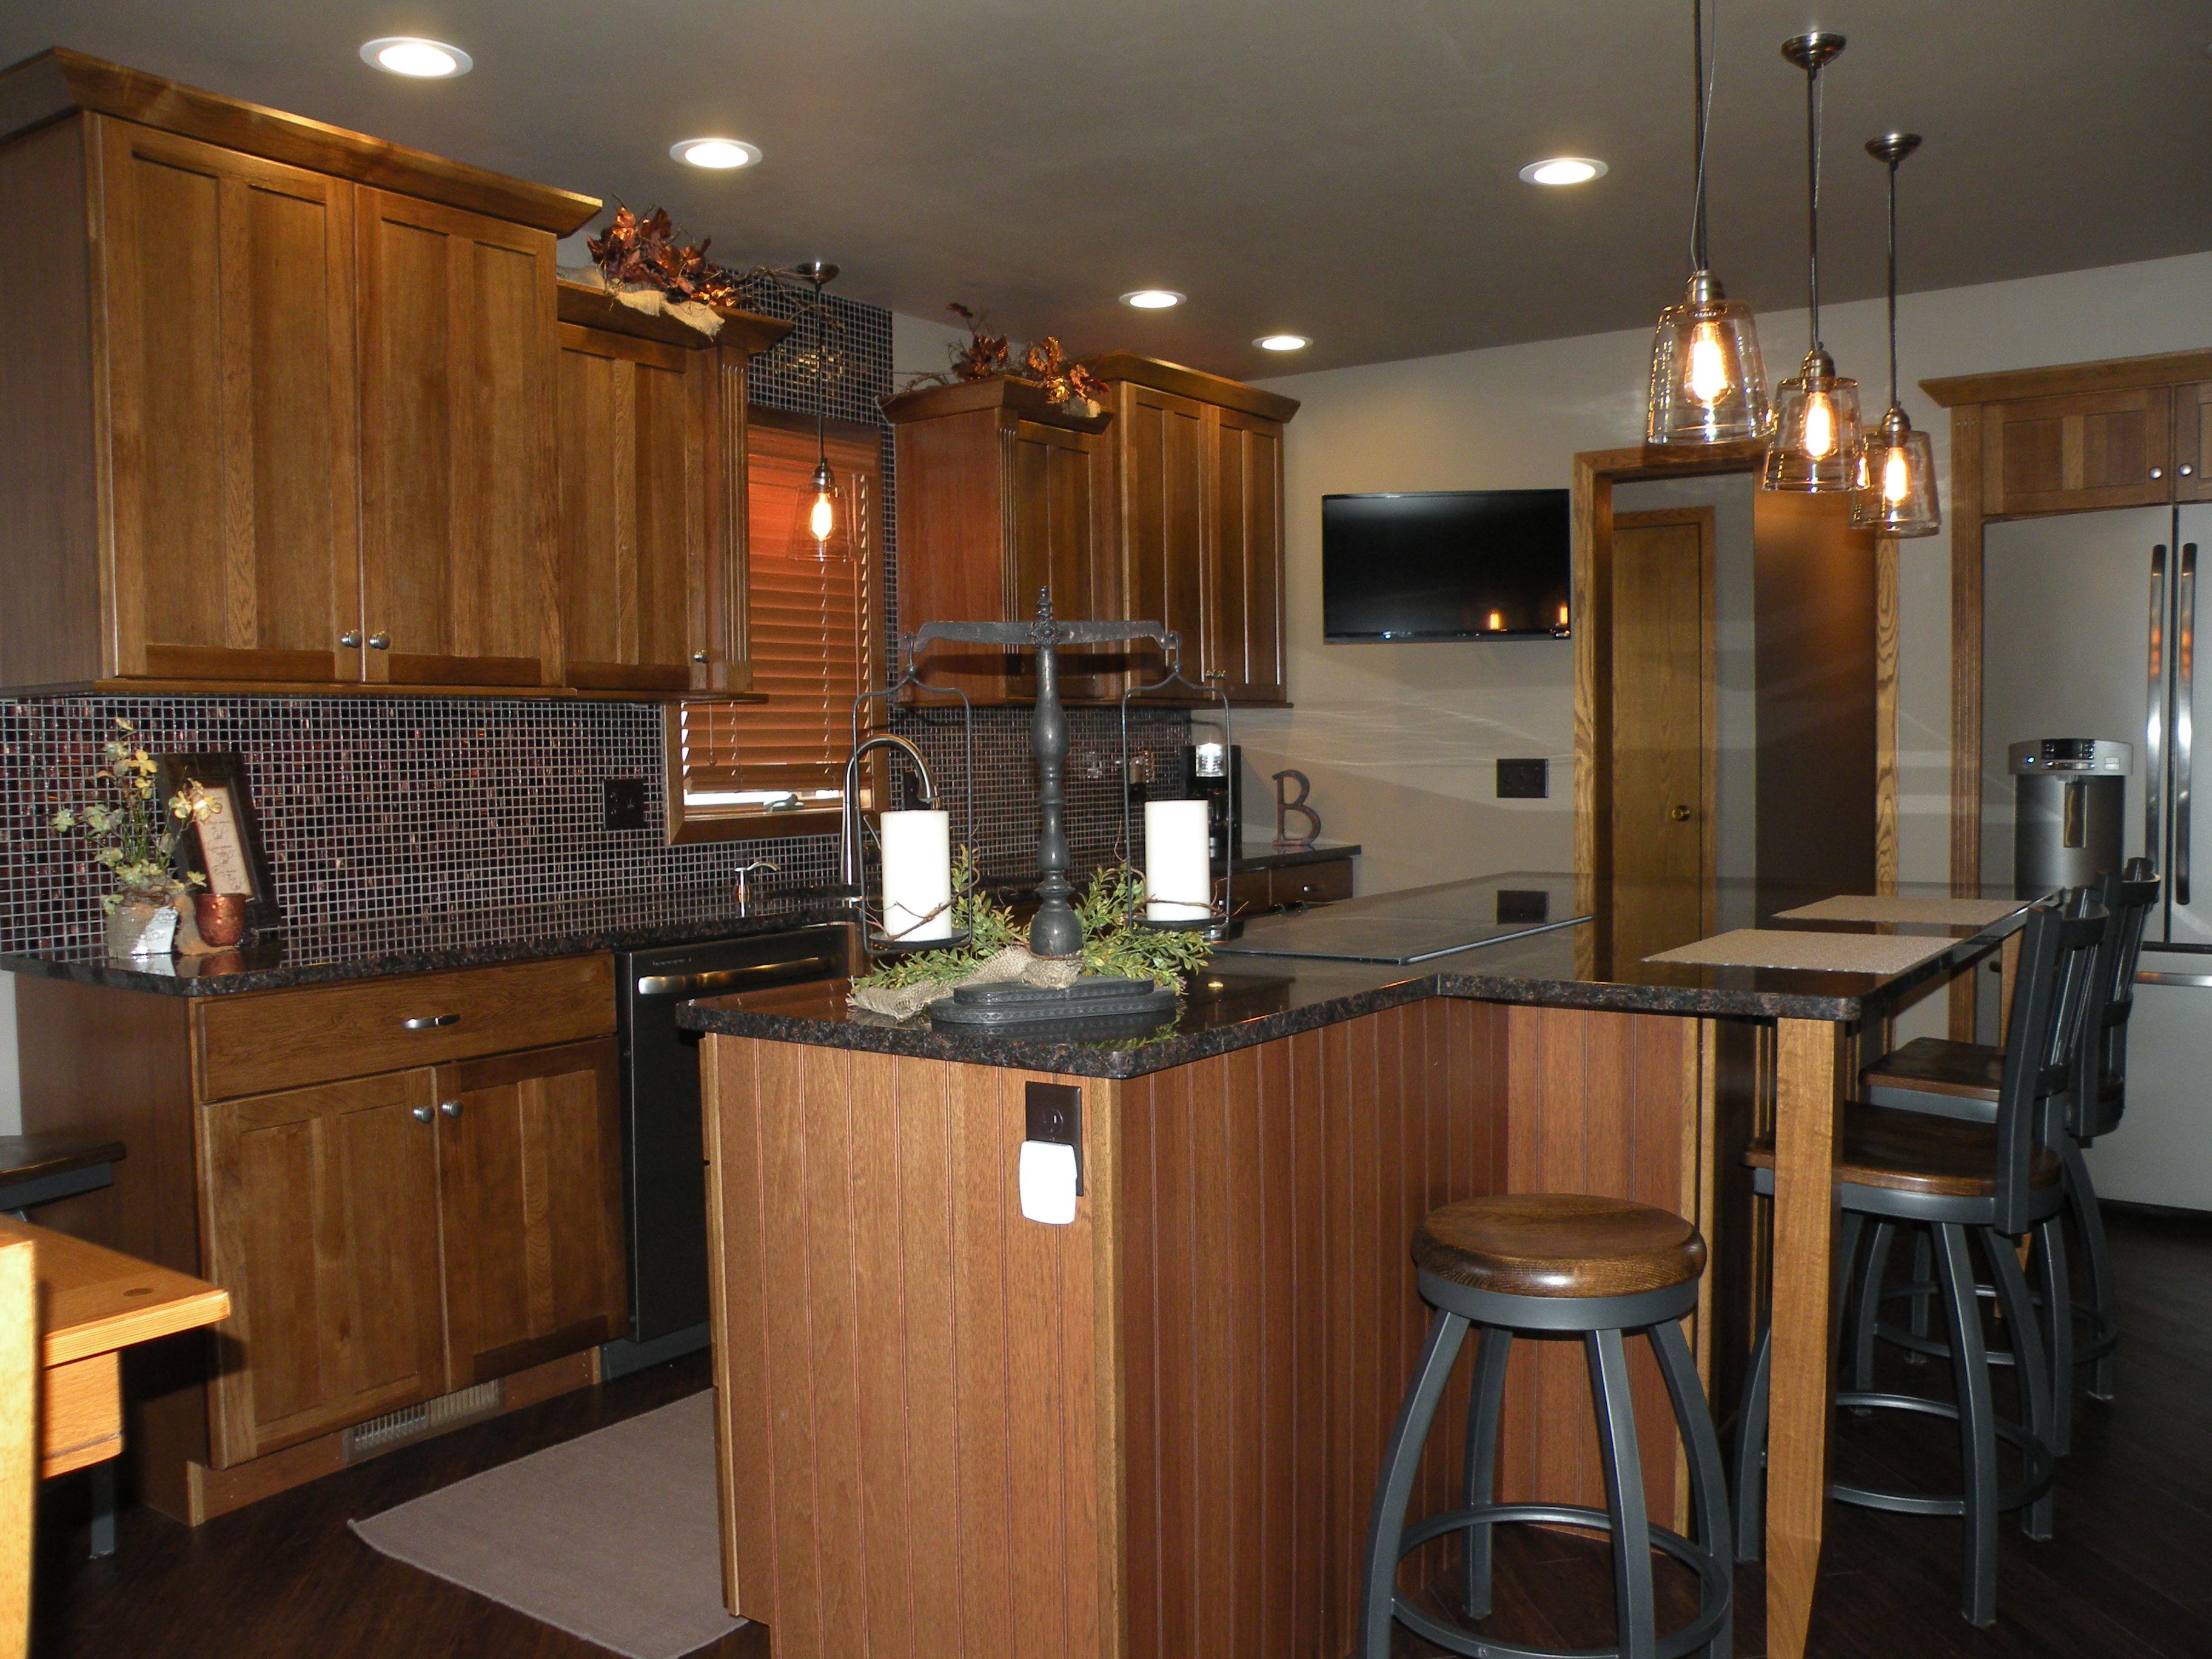 Hickory Cabinets With Granite Countertops